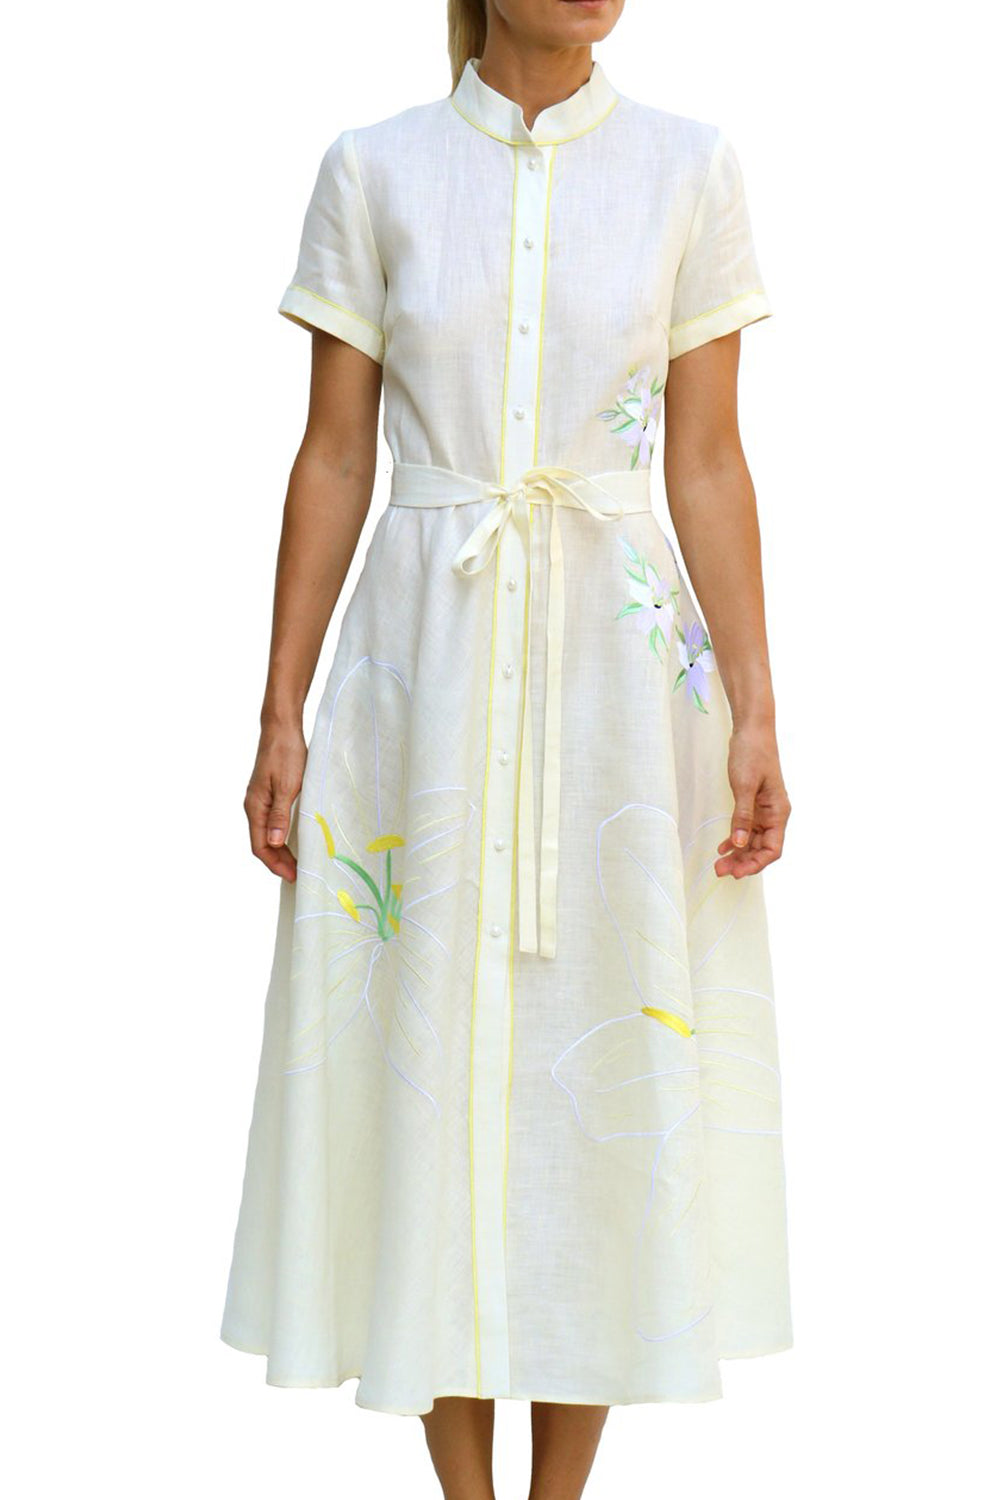 Jacmel Midi Cream Lilly Embroidered Linen Dress